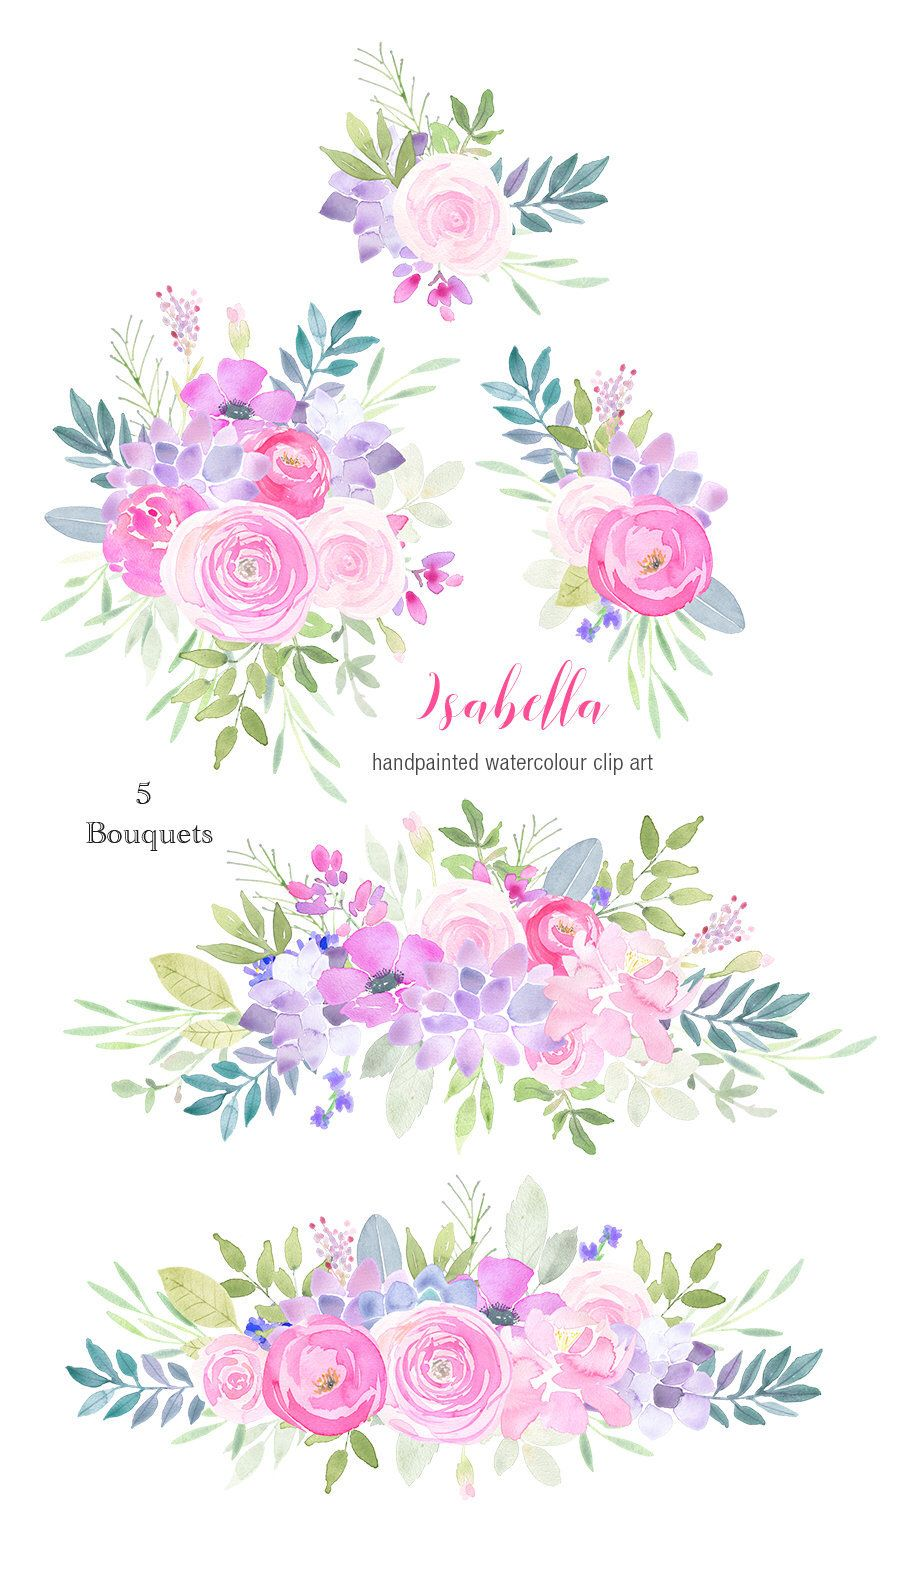 Watercolor Floral Clipart - flower bouquets, pink succulents, roses ...